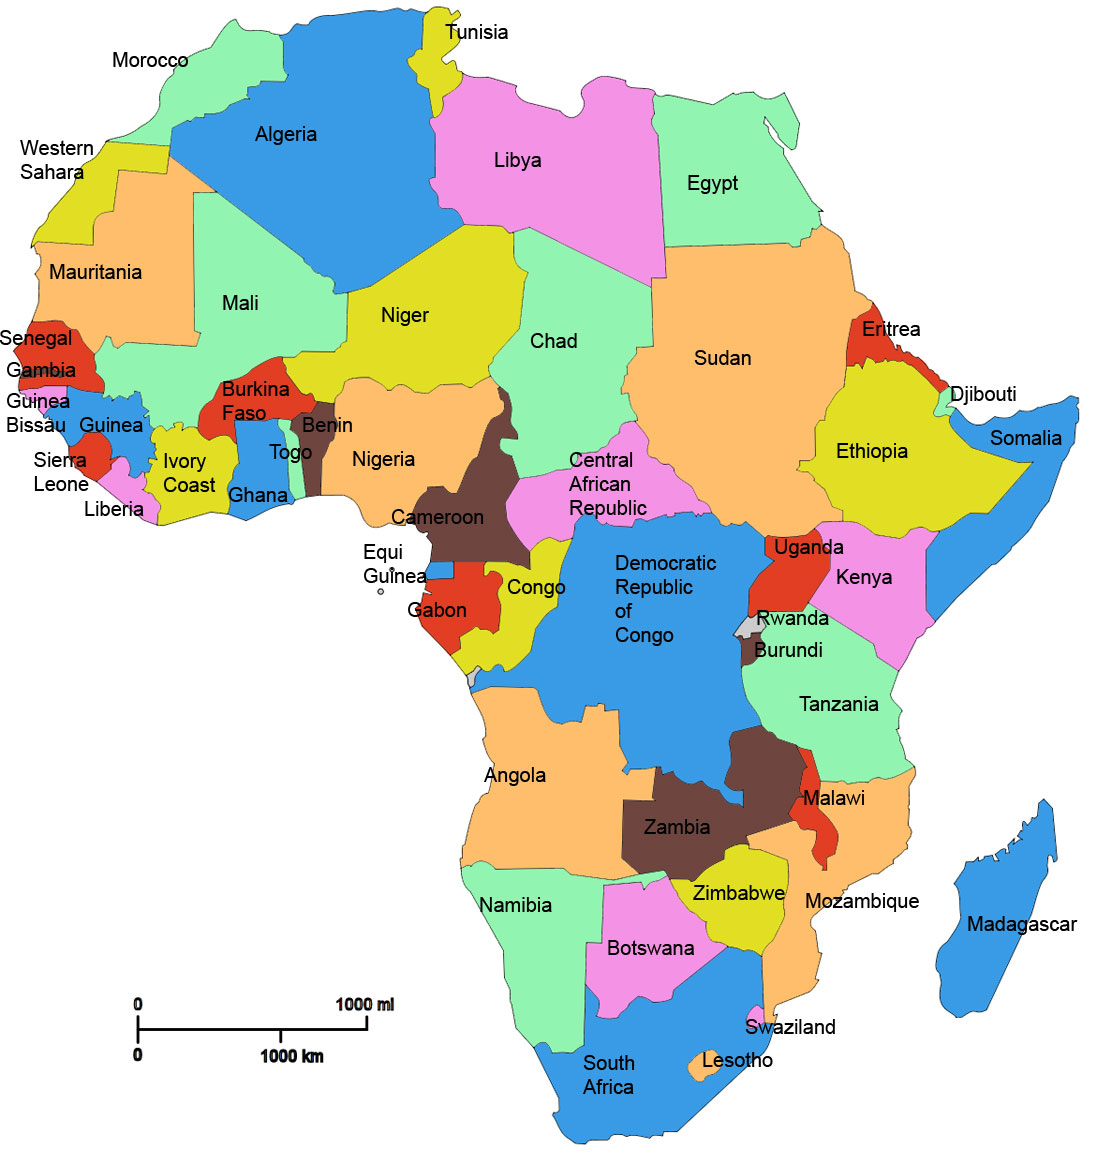 BU Research Blog | Work in labs? Got links in Africa? Then ...